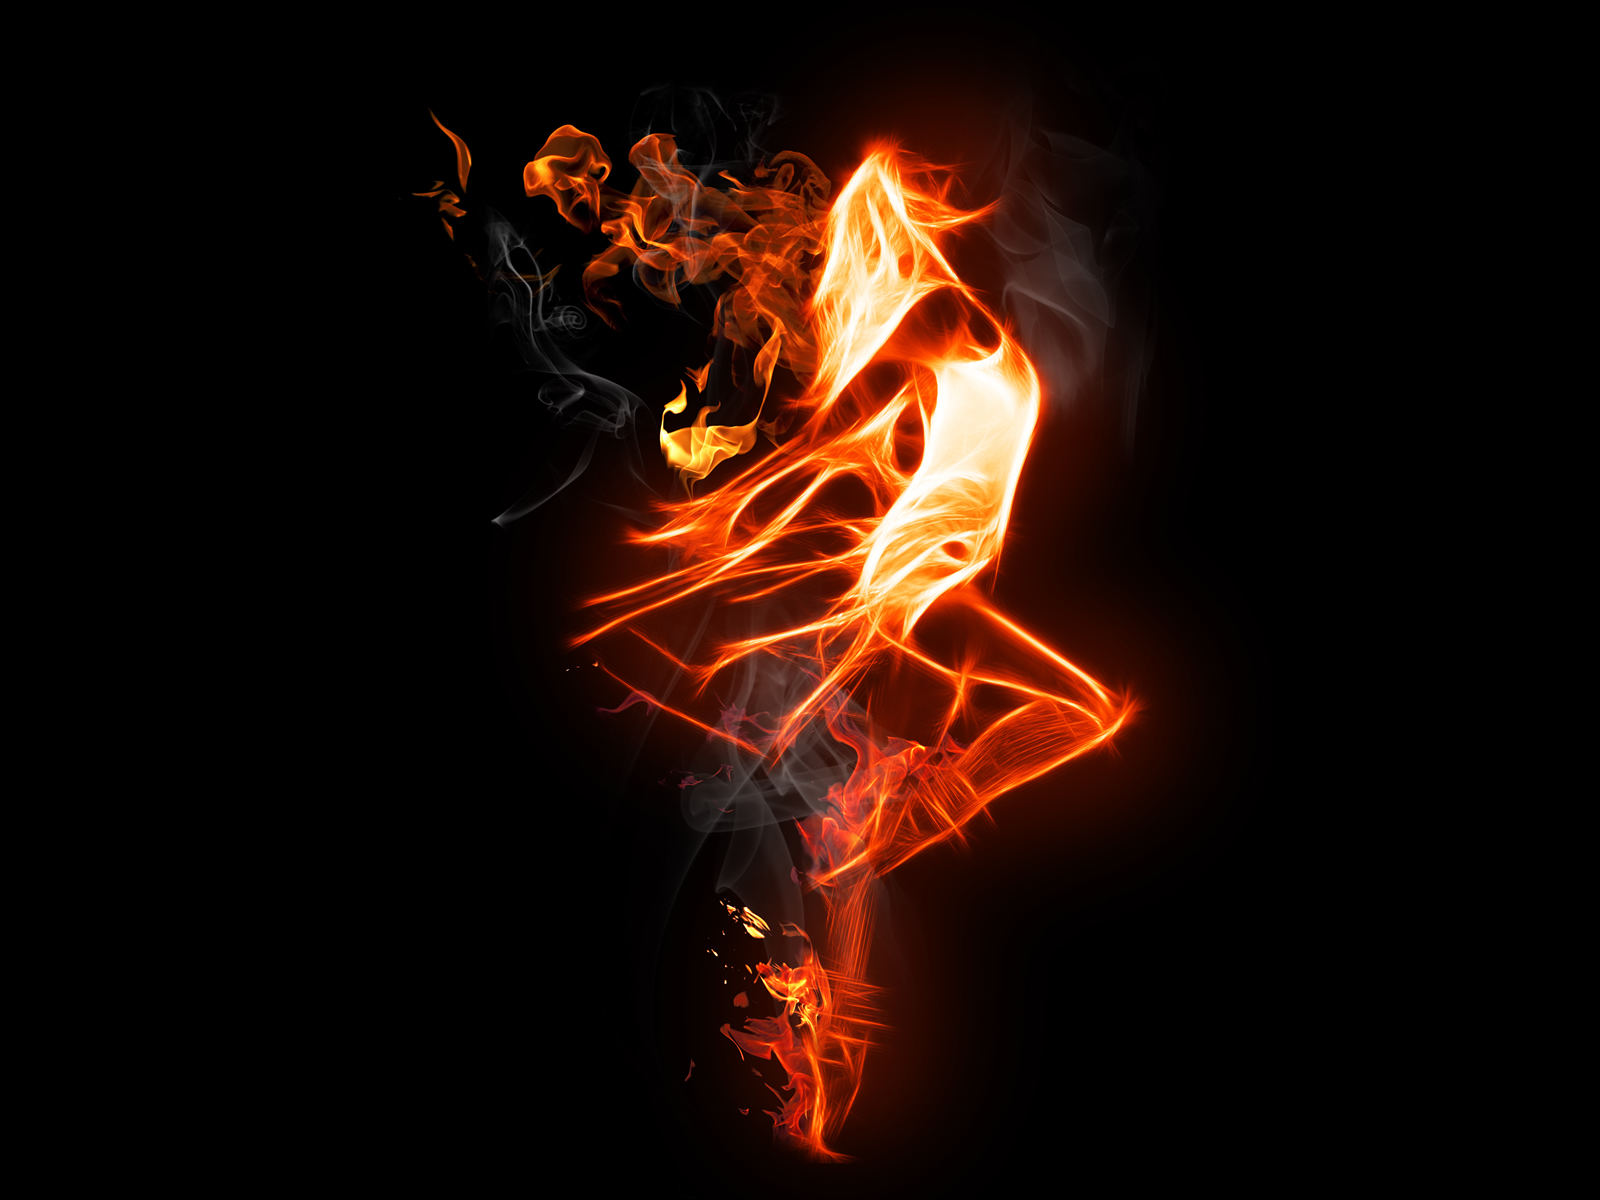 fire wallpapers 07 - [1600 x 1200]